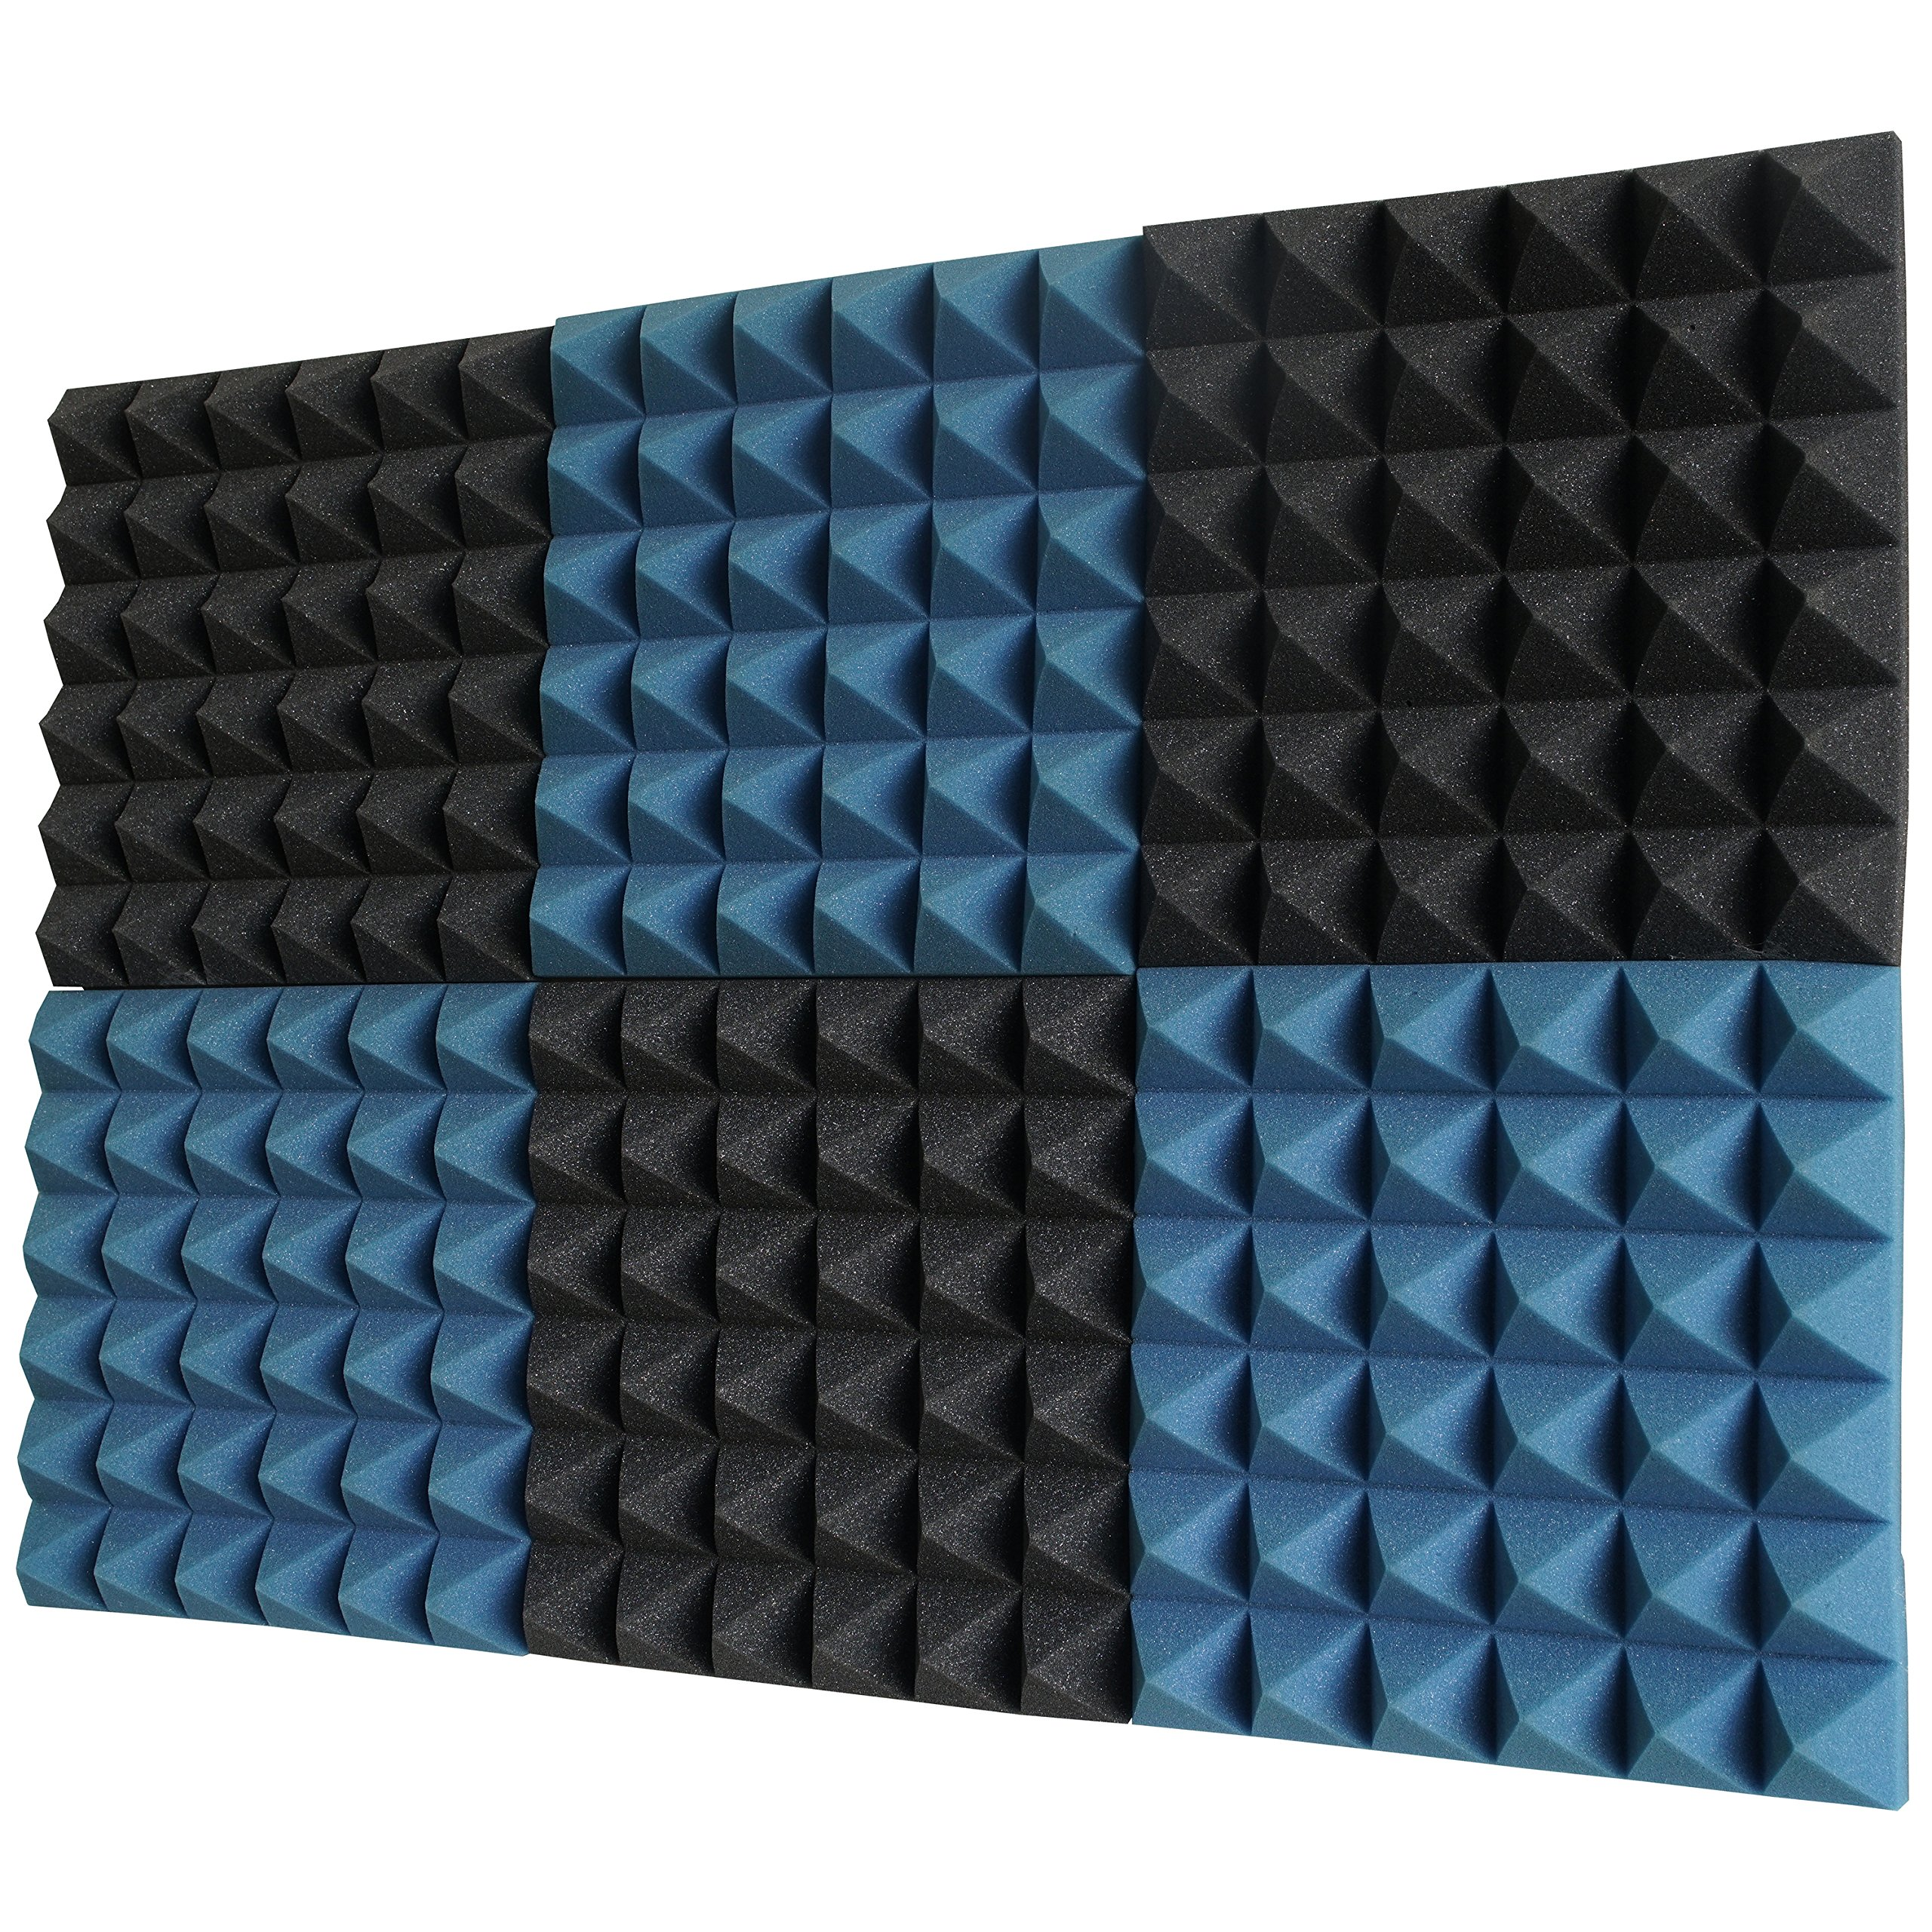 6 Pack - Ice Blue/Charcoal Acoustic Foam Sound Absorption Pyramid Studio Treatment Wall Panels, 2'' X 12'' X 12''